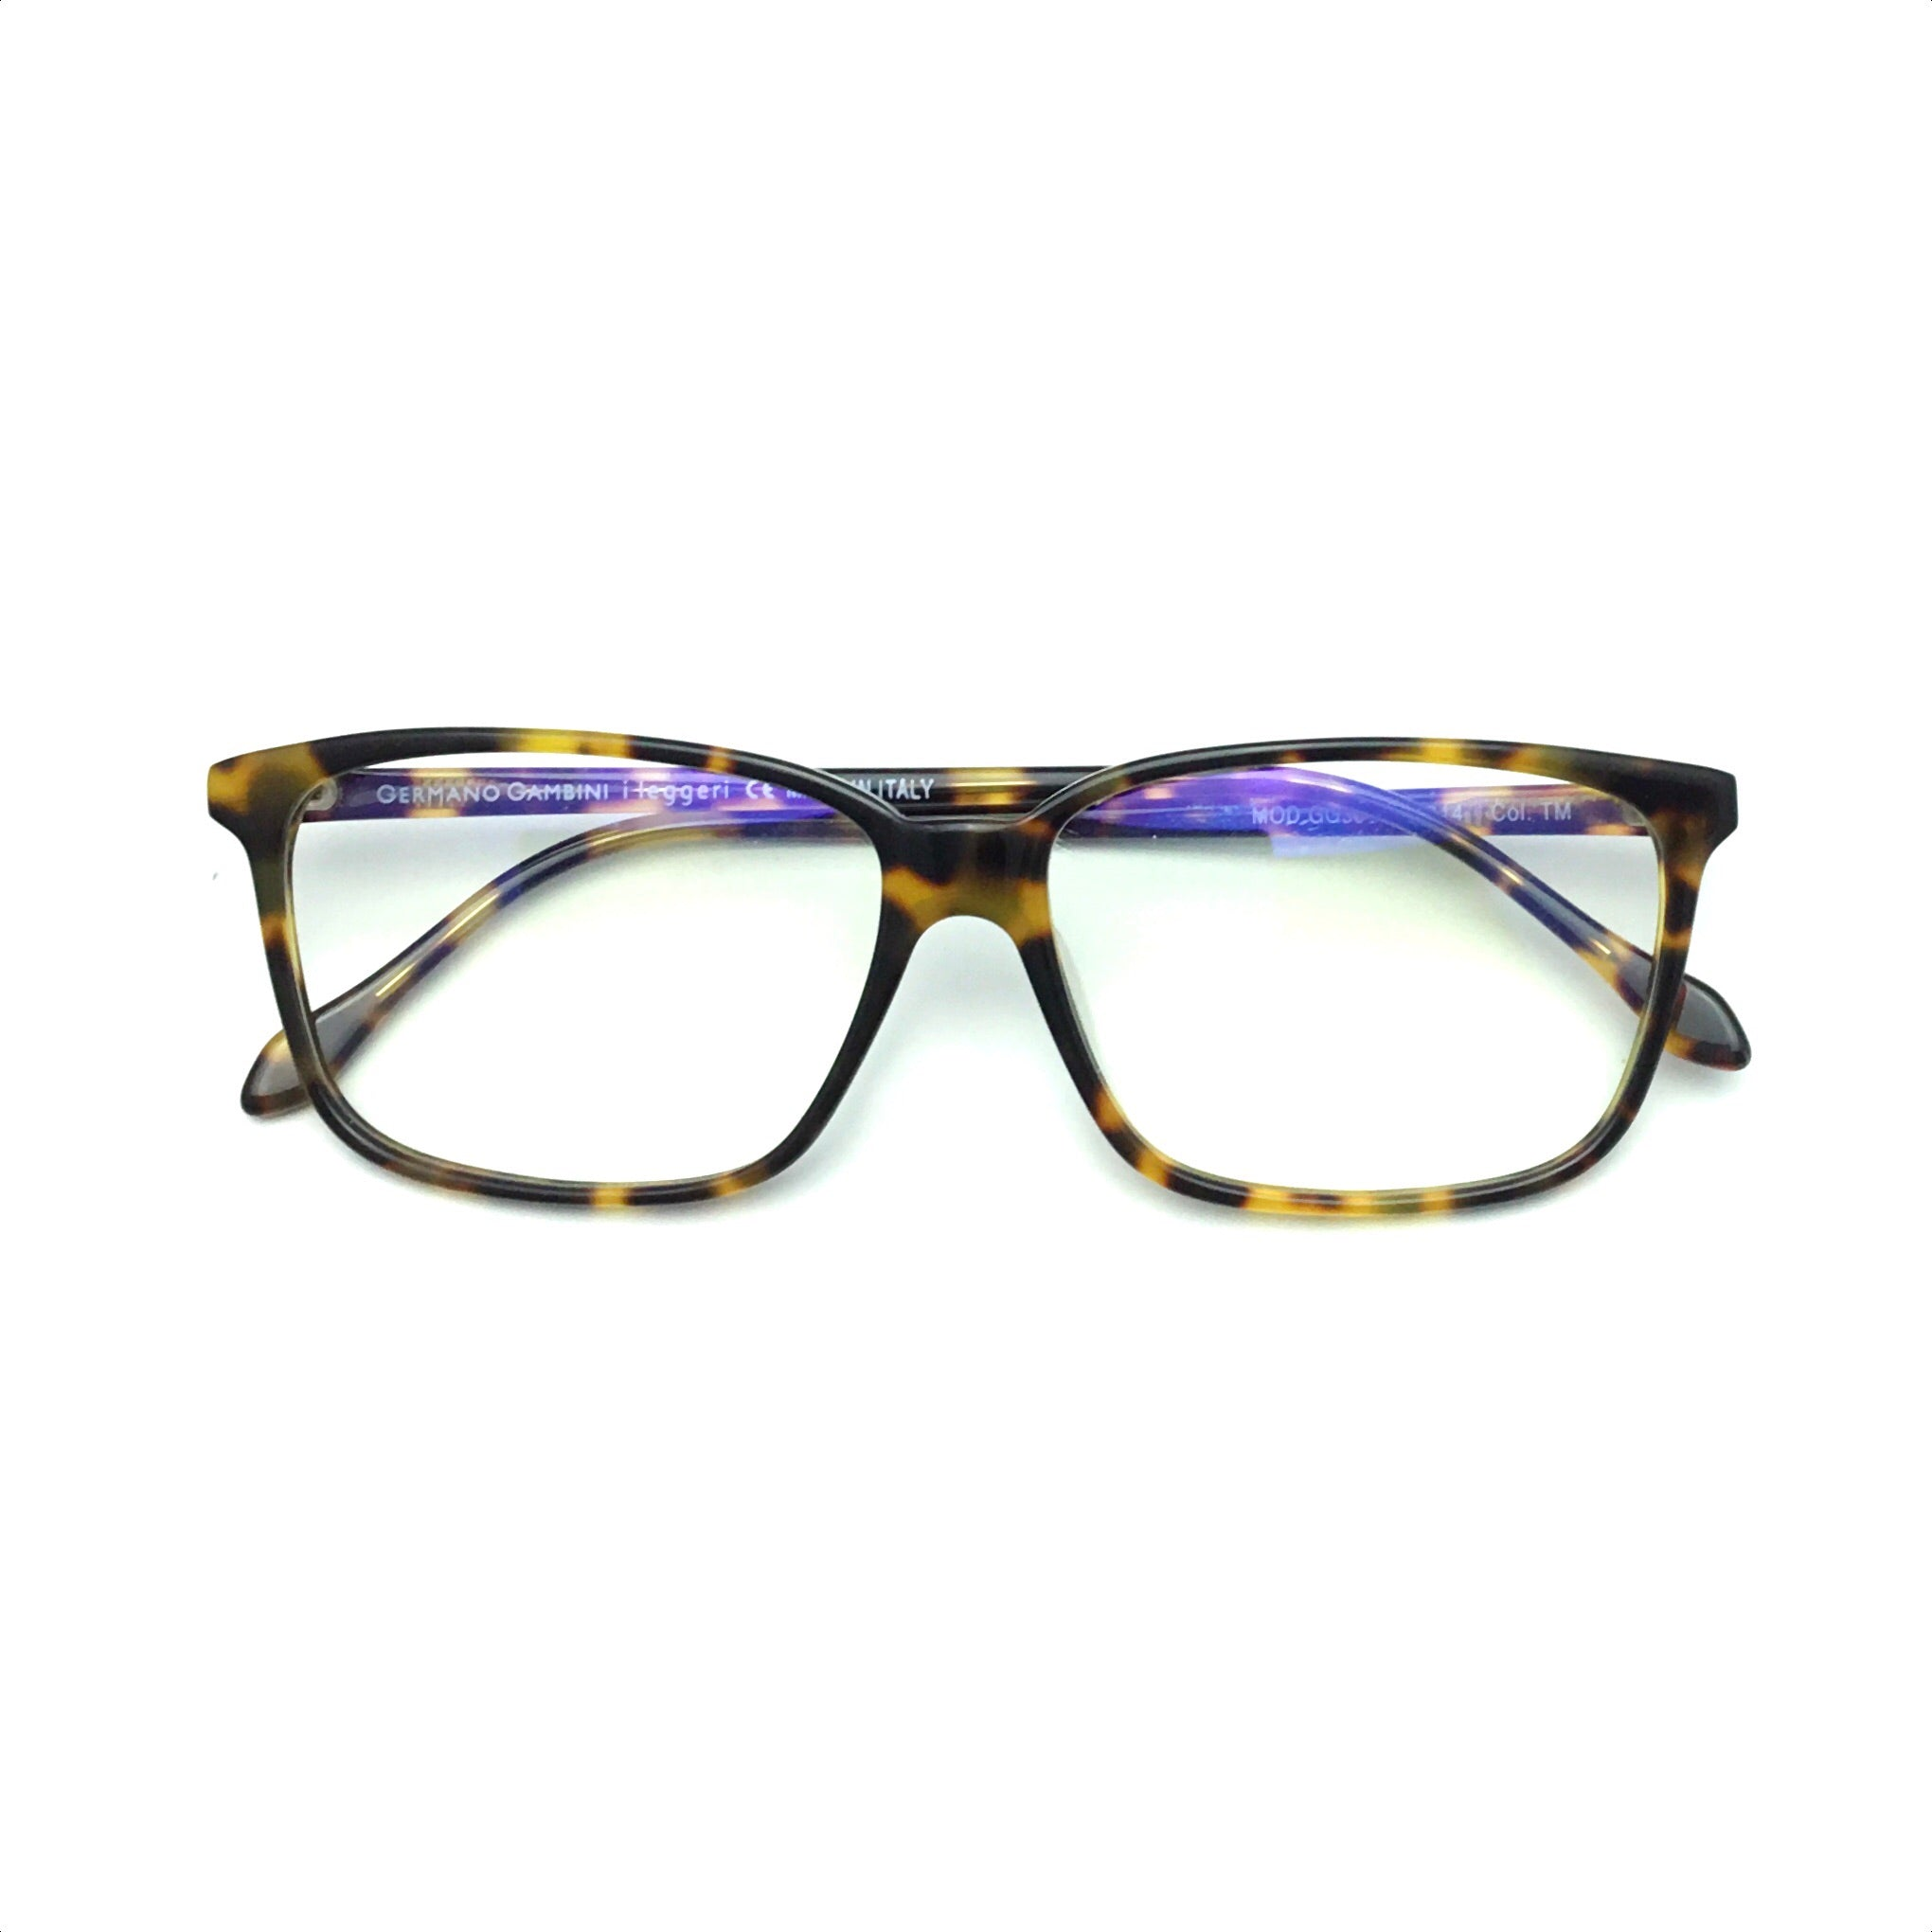 Germano Gambini Glasses $199 Tortoise Shell K7